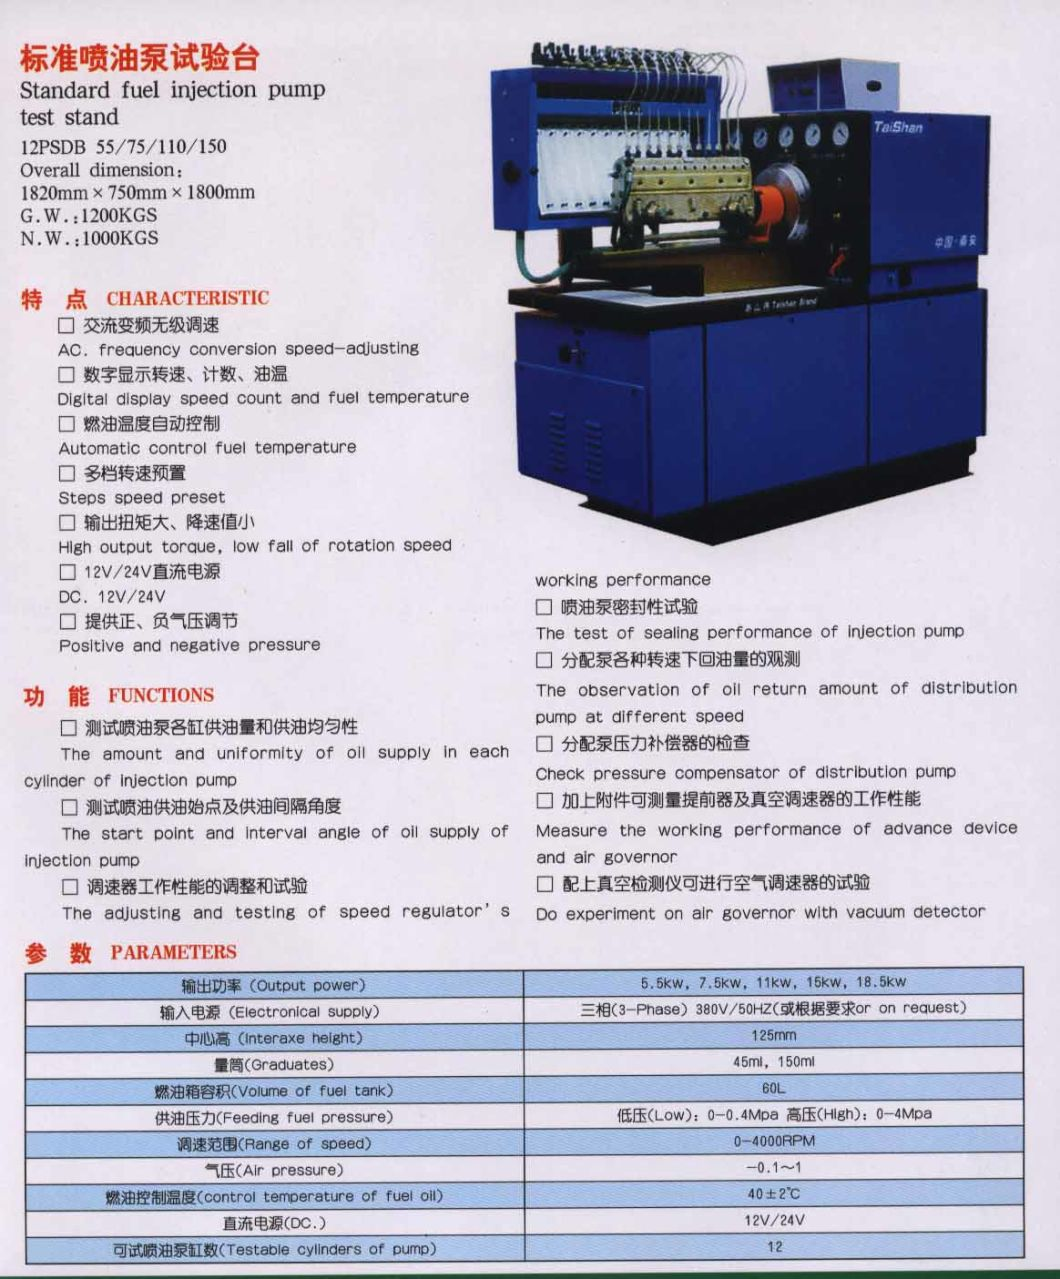 China Diesel Fuel Injection Pump Test Bench-12psdb Series - China